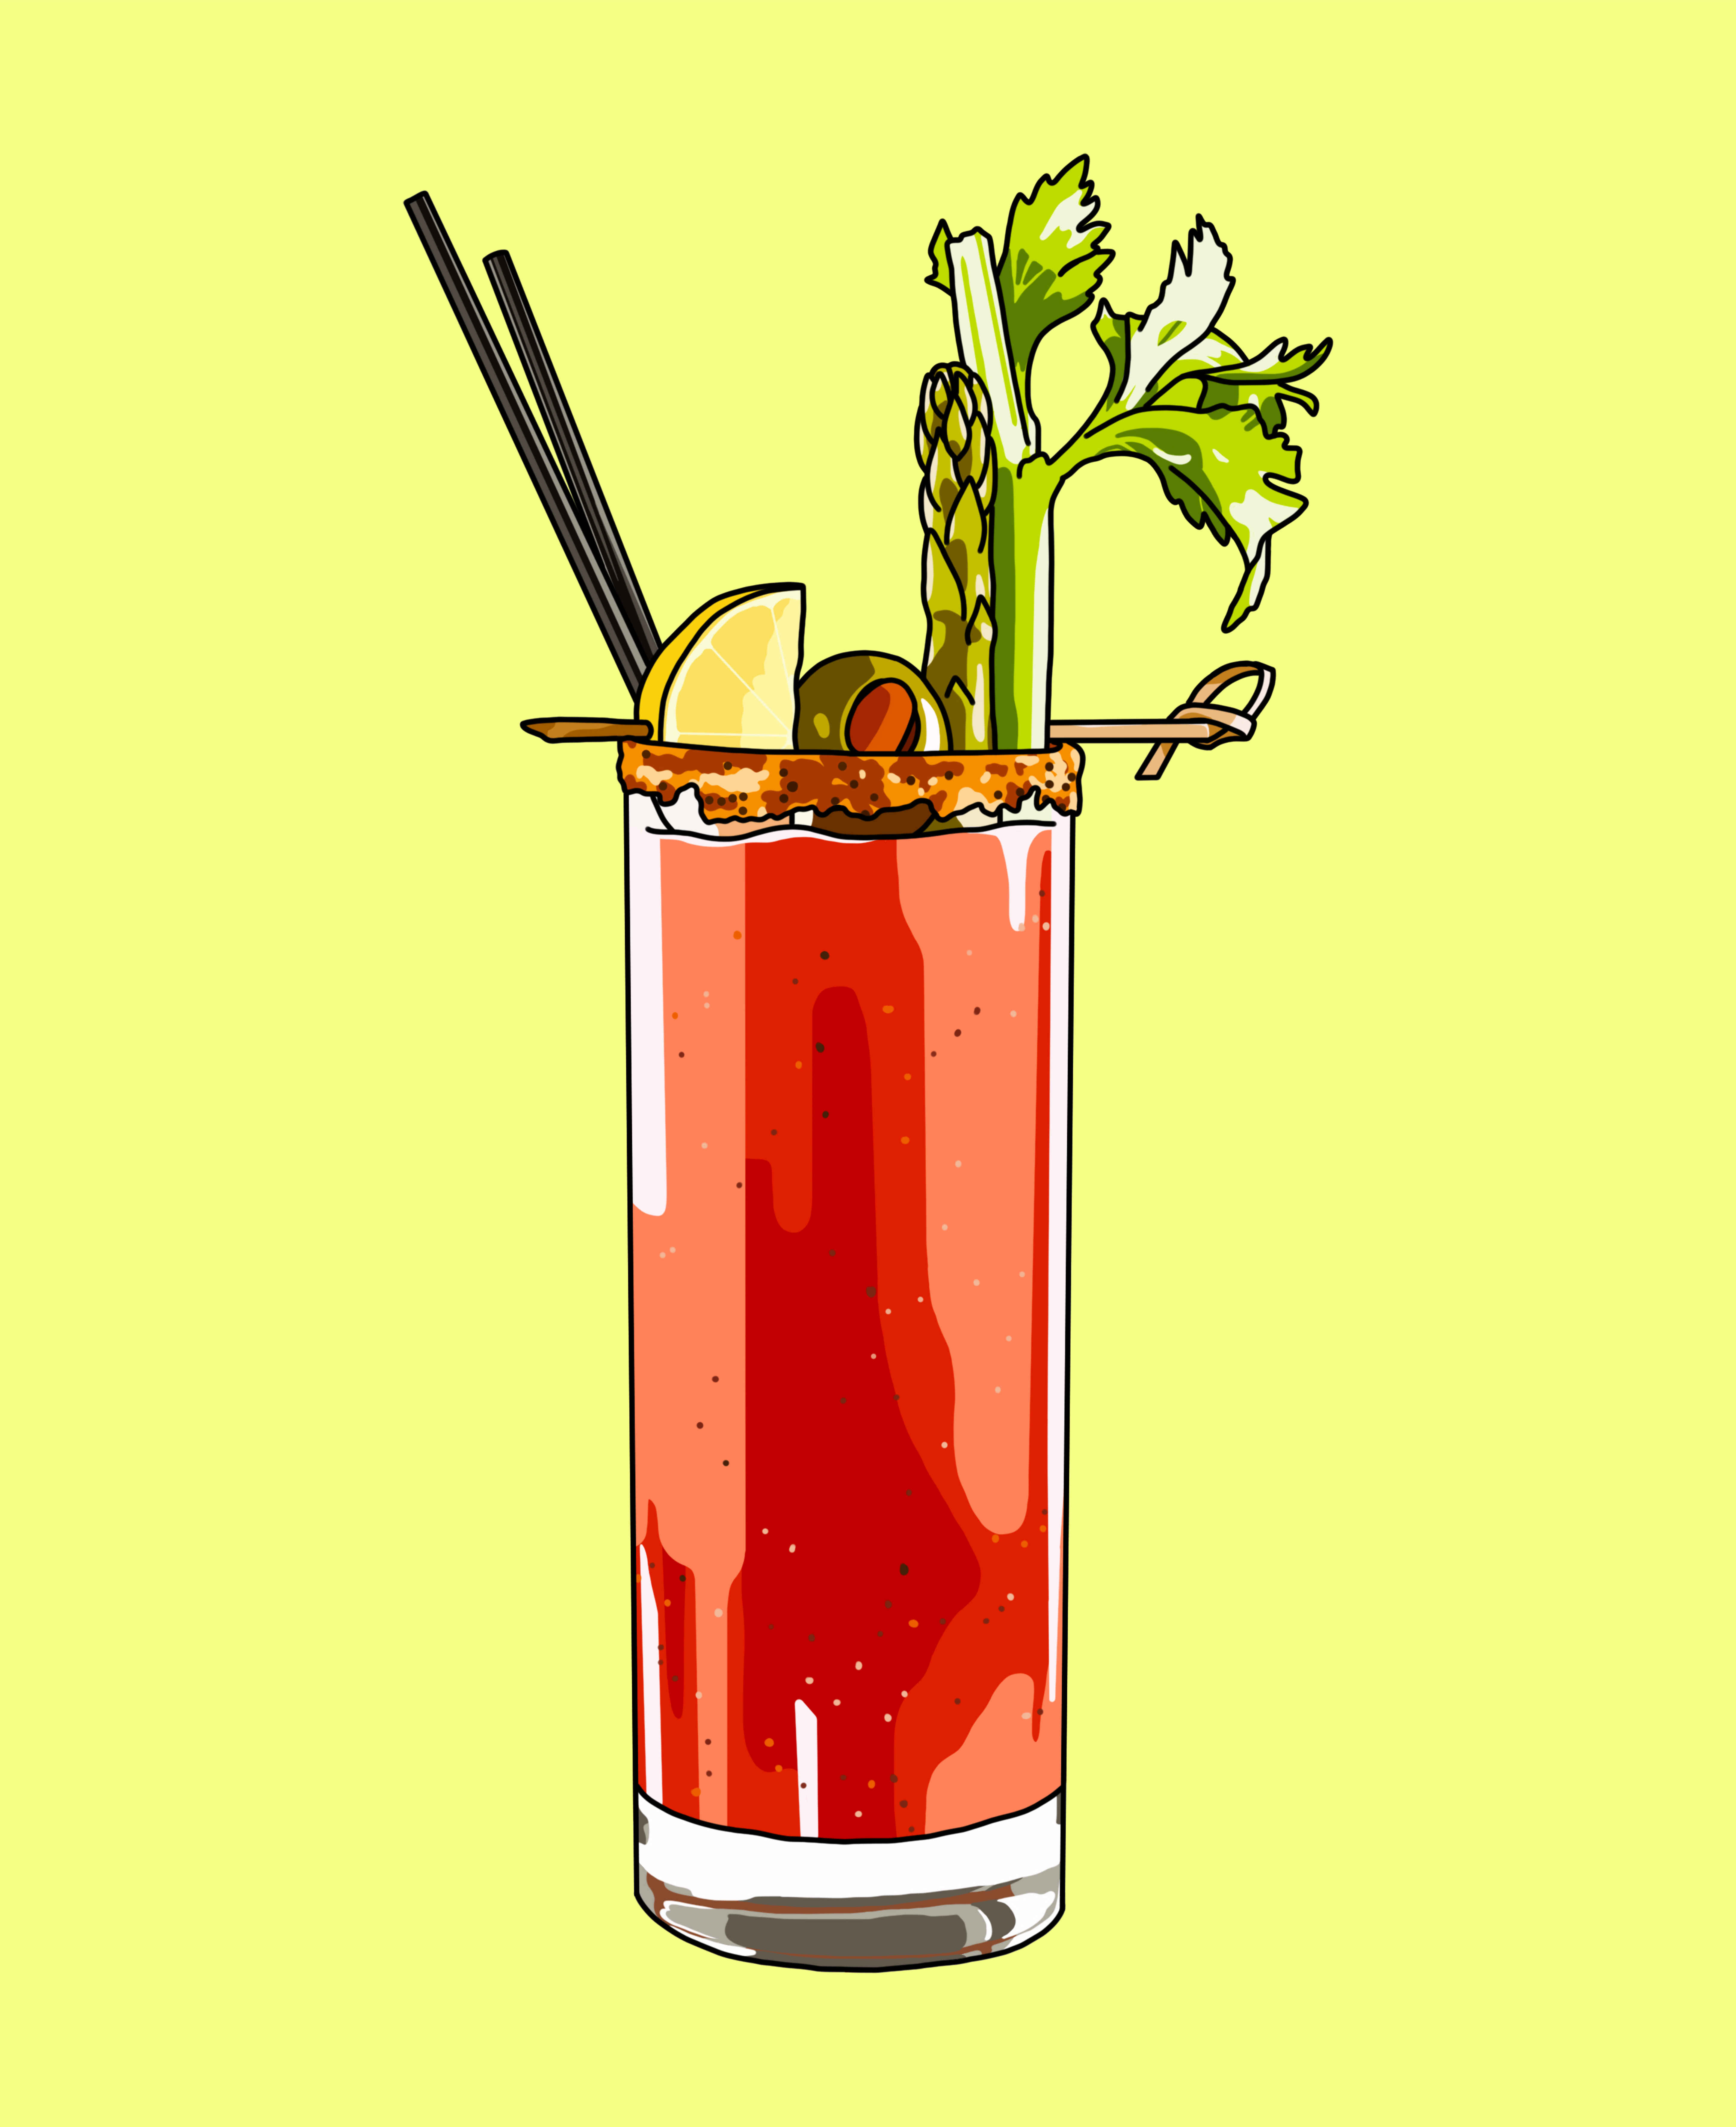 Those_who_brunch_breakfast_cocktail_bloody_mary_2018.jpg